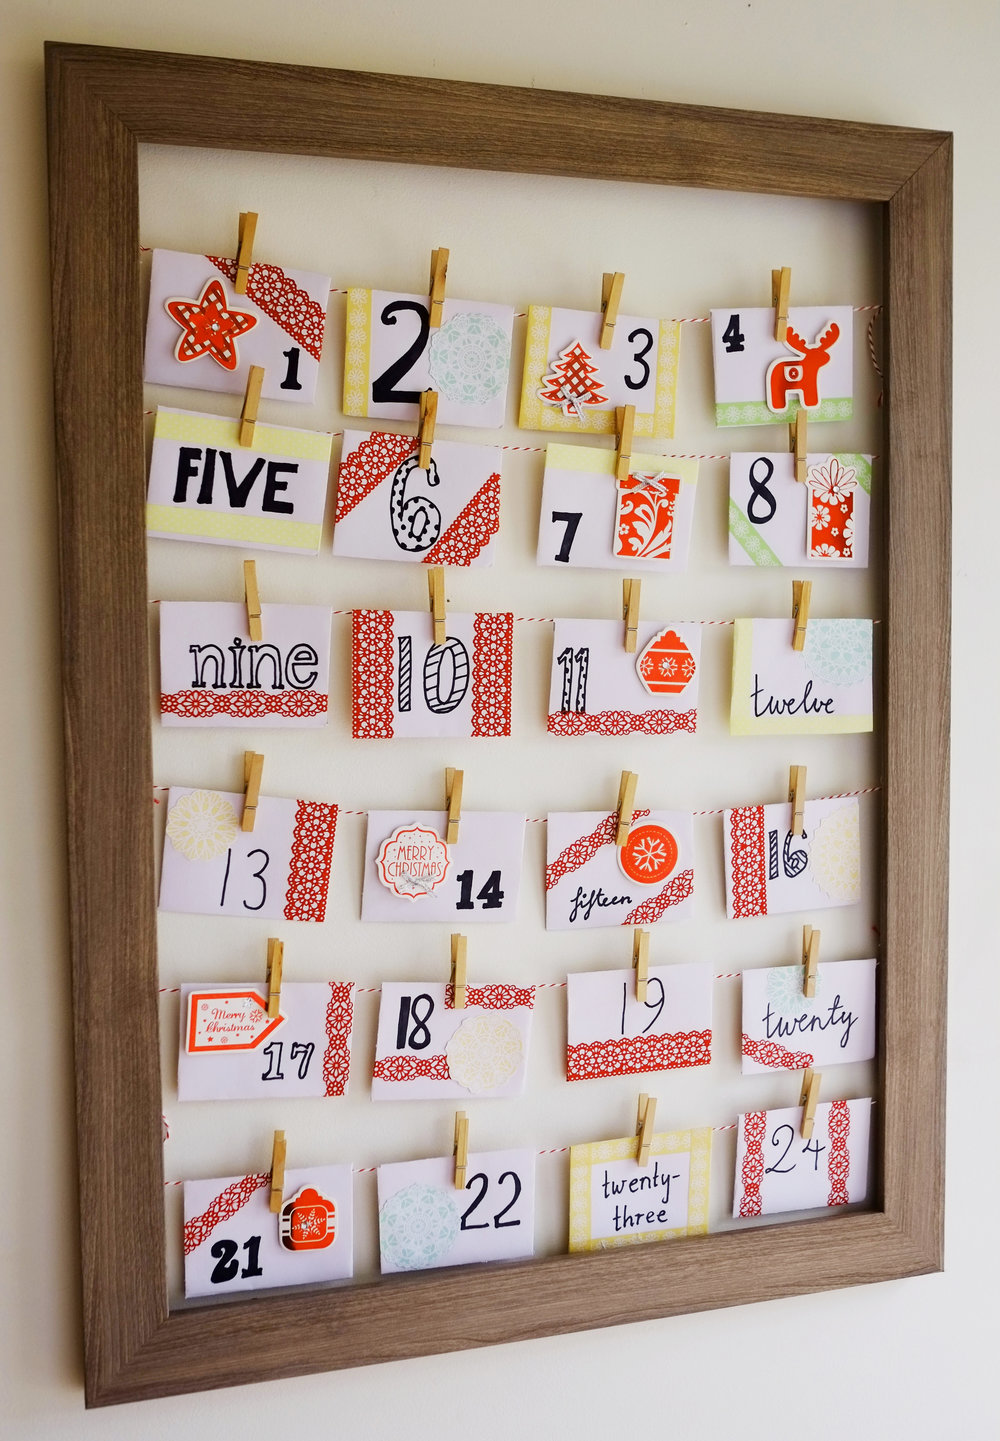 Christmas advent calendar - The Organised You